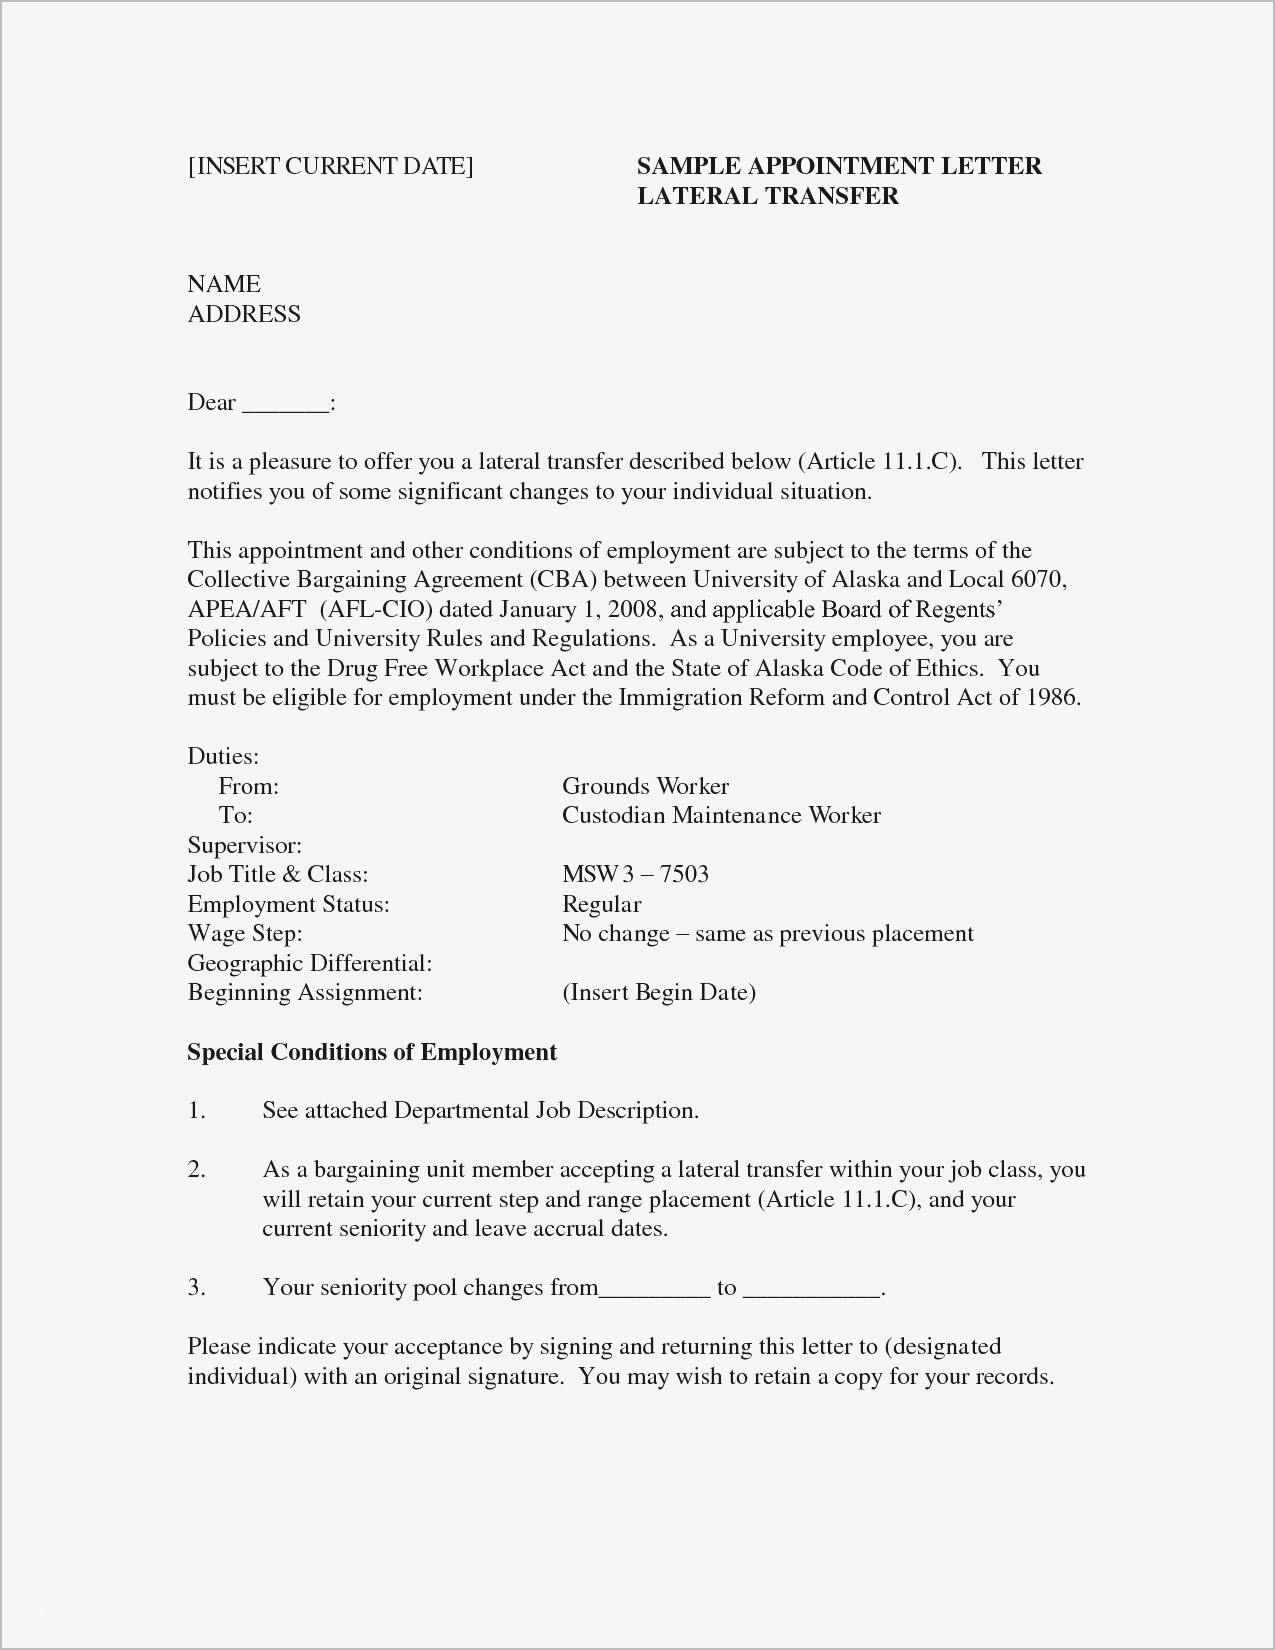 023 College English Research Paper Example Resume For No Previous Work Experience Awesome Education Job Sample Unusual Full